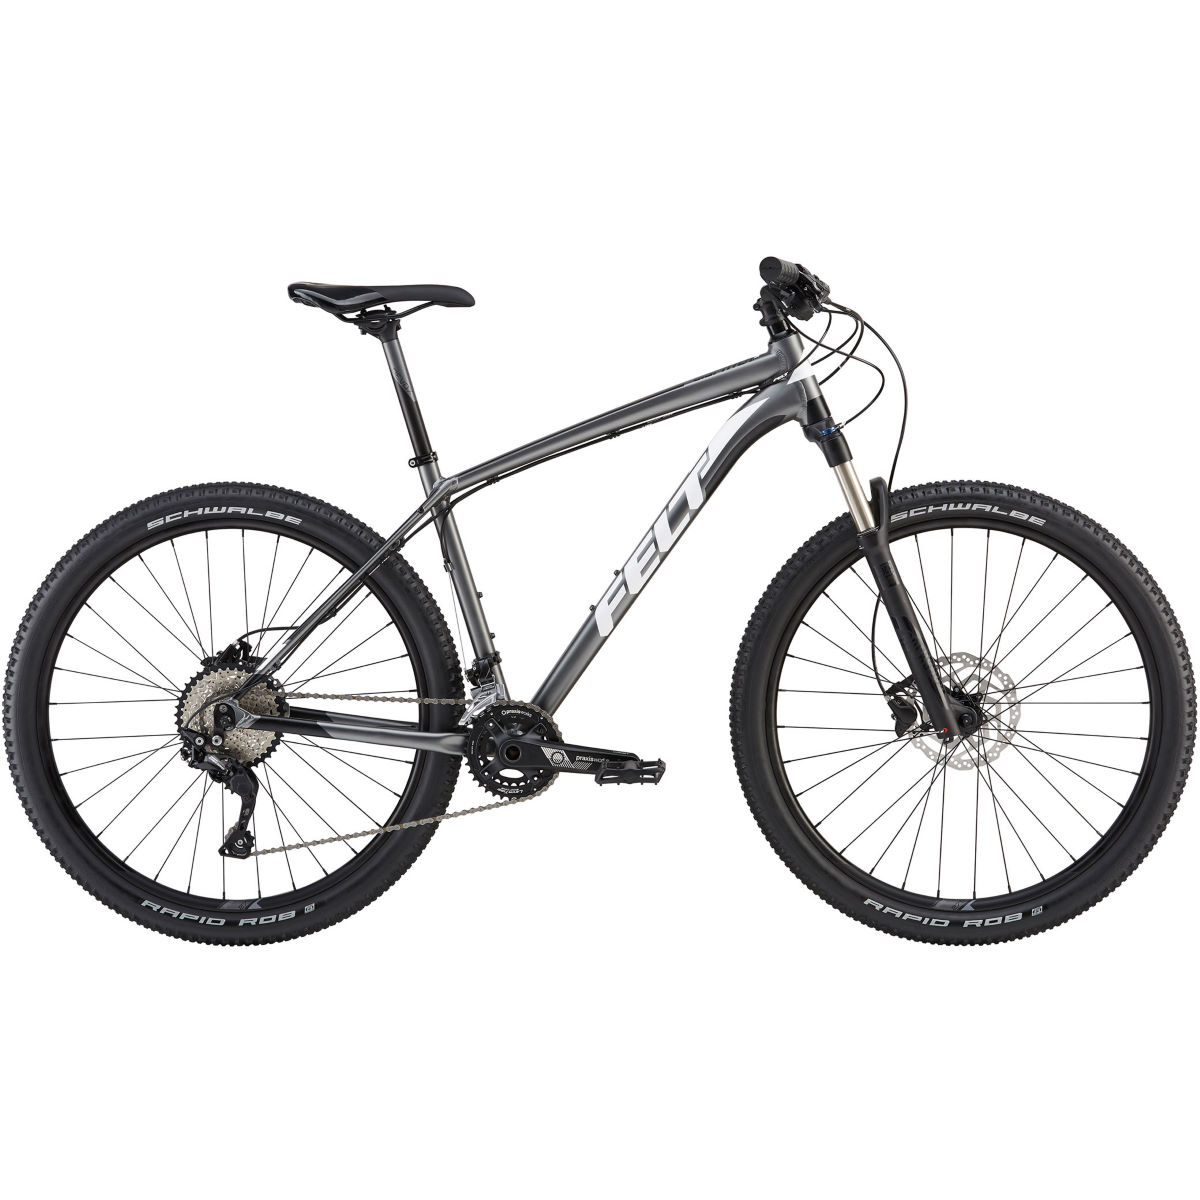 VTT semi-rigide Felt Dispatch 7/50 XC (2018) - 20'' Stock Bike